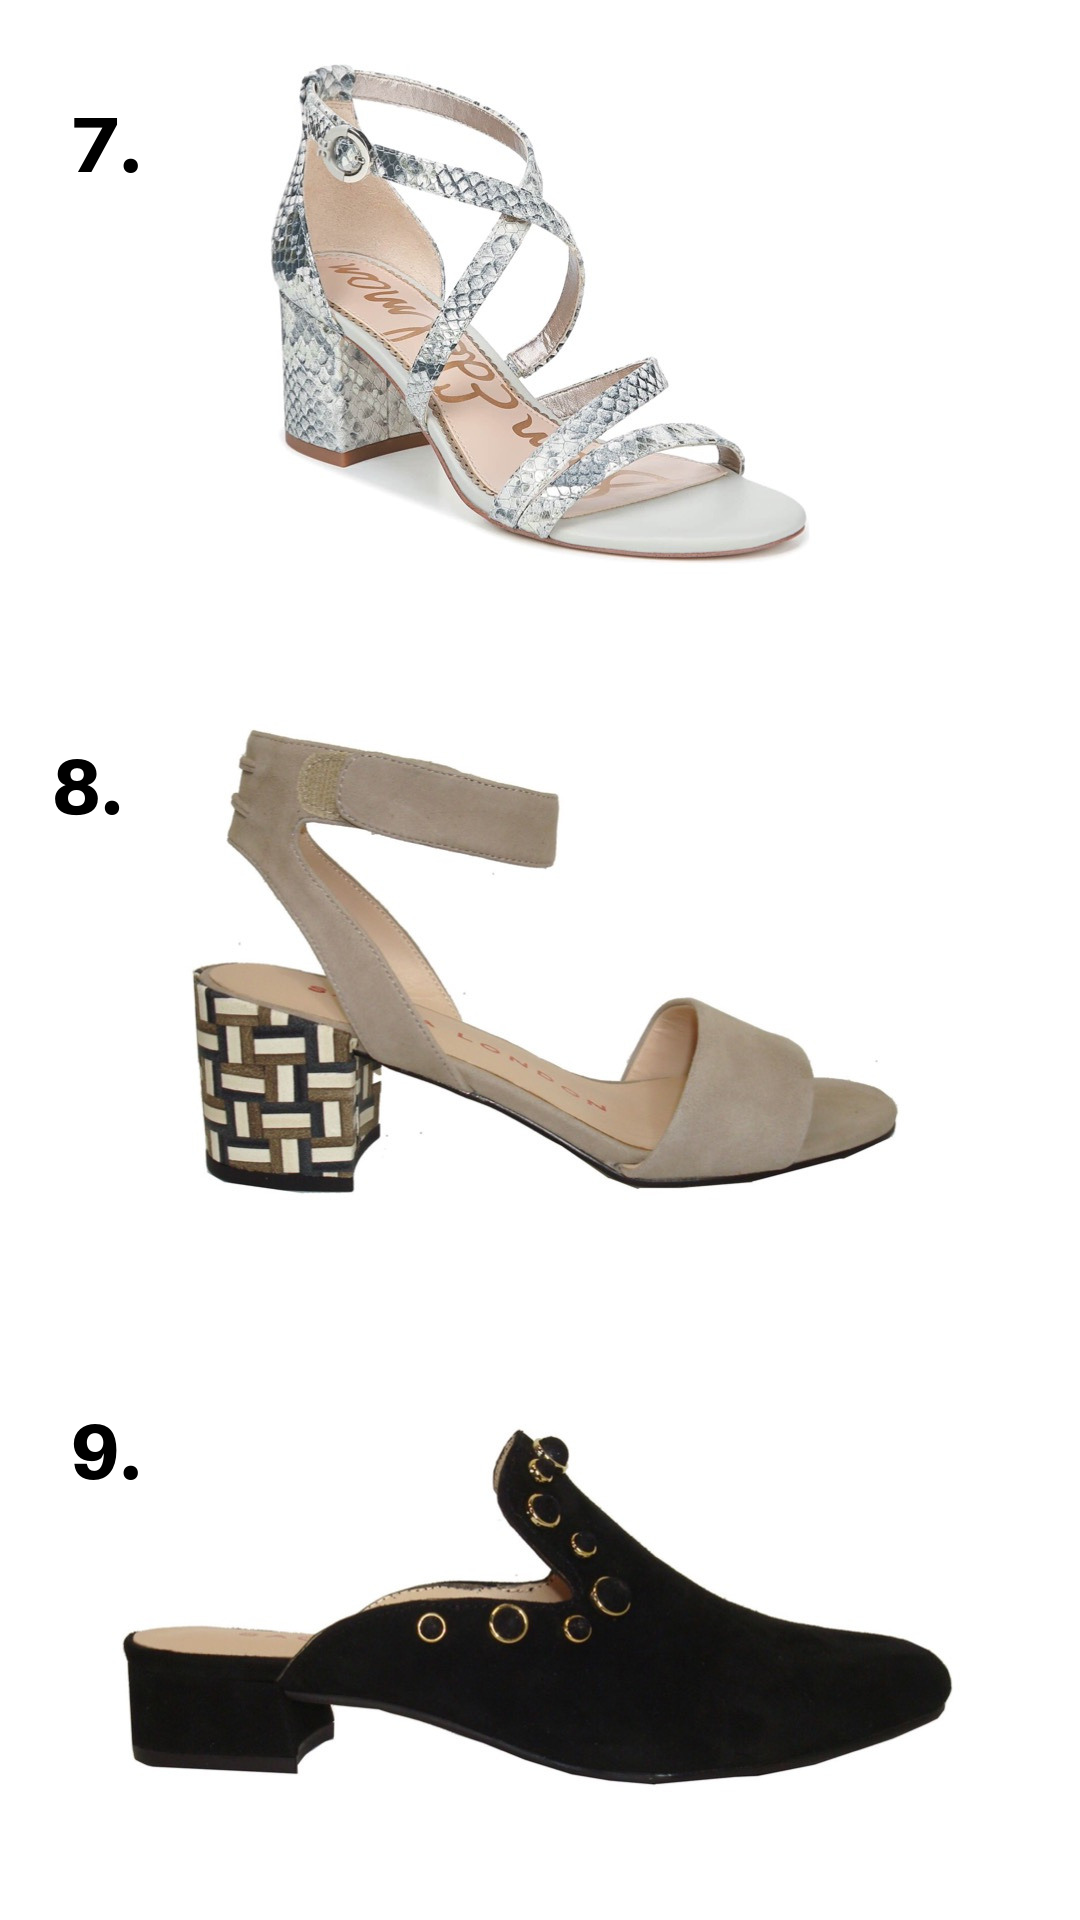 - 7. The Serpent Strappy heels that we cannot get enough of this season. The best part about this print is it can easily be worn with all colors. Snake print is the new neutral.CLICK TO PURCHASE——————————————-8. The Neutral Territory sandal with a low block heel can effortlessly be worn from day to evening. Throw these in your suitcase for your next adventure.CLICK TO PURCHASE——————————————-9. The Black Out Mules are easy to slip on and off. Transform an everyday outfit into a sophisticated look with these stylish mules. Pair with denim and a button up or a little black dress for date night.CLICK TO PURCHASE